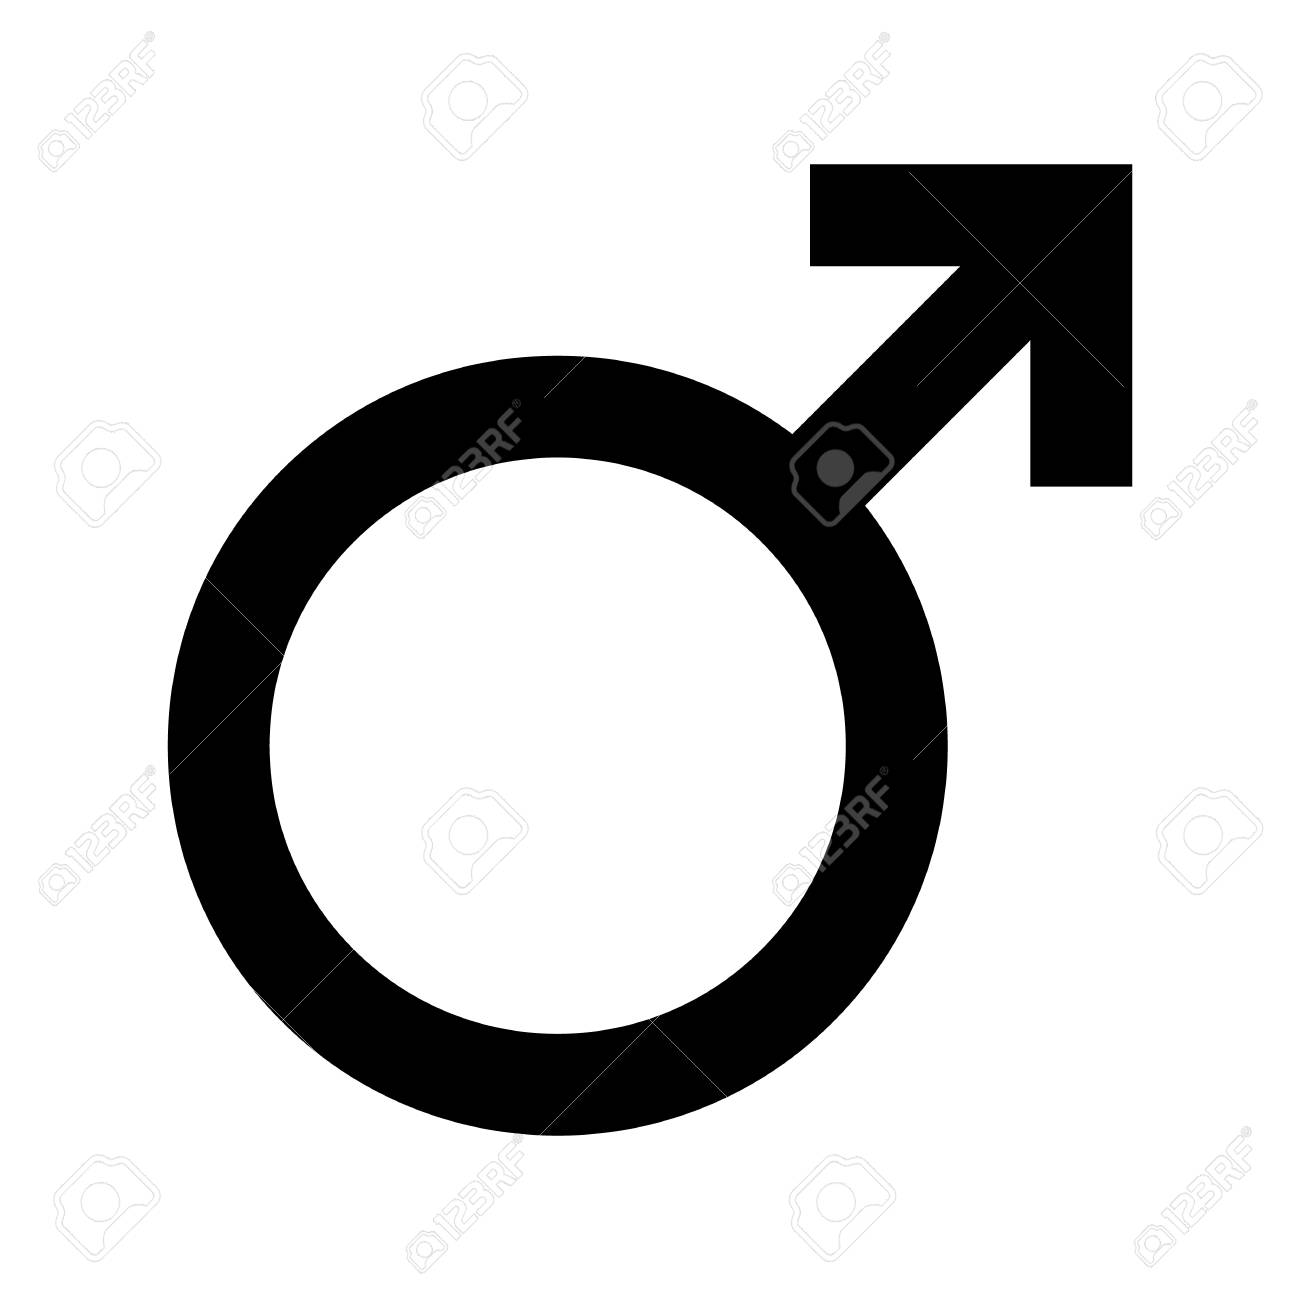 male symbol isolated on white men gender sign mars icon royalty free cliparts vectors and stock illustration image 114282180 male symbol isolated on white men gender sign mars icon